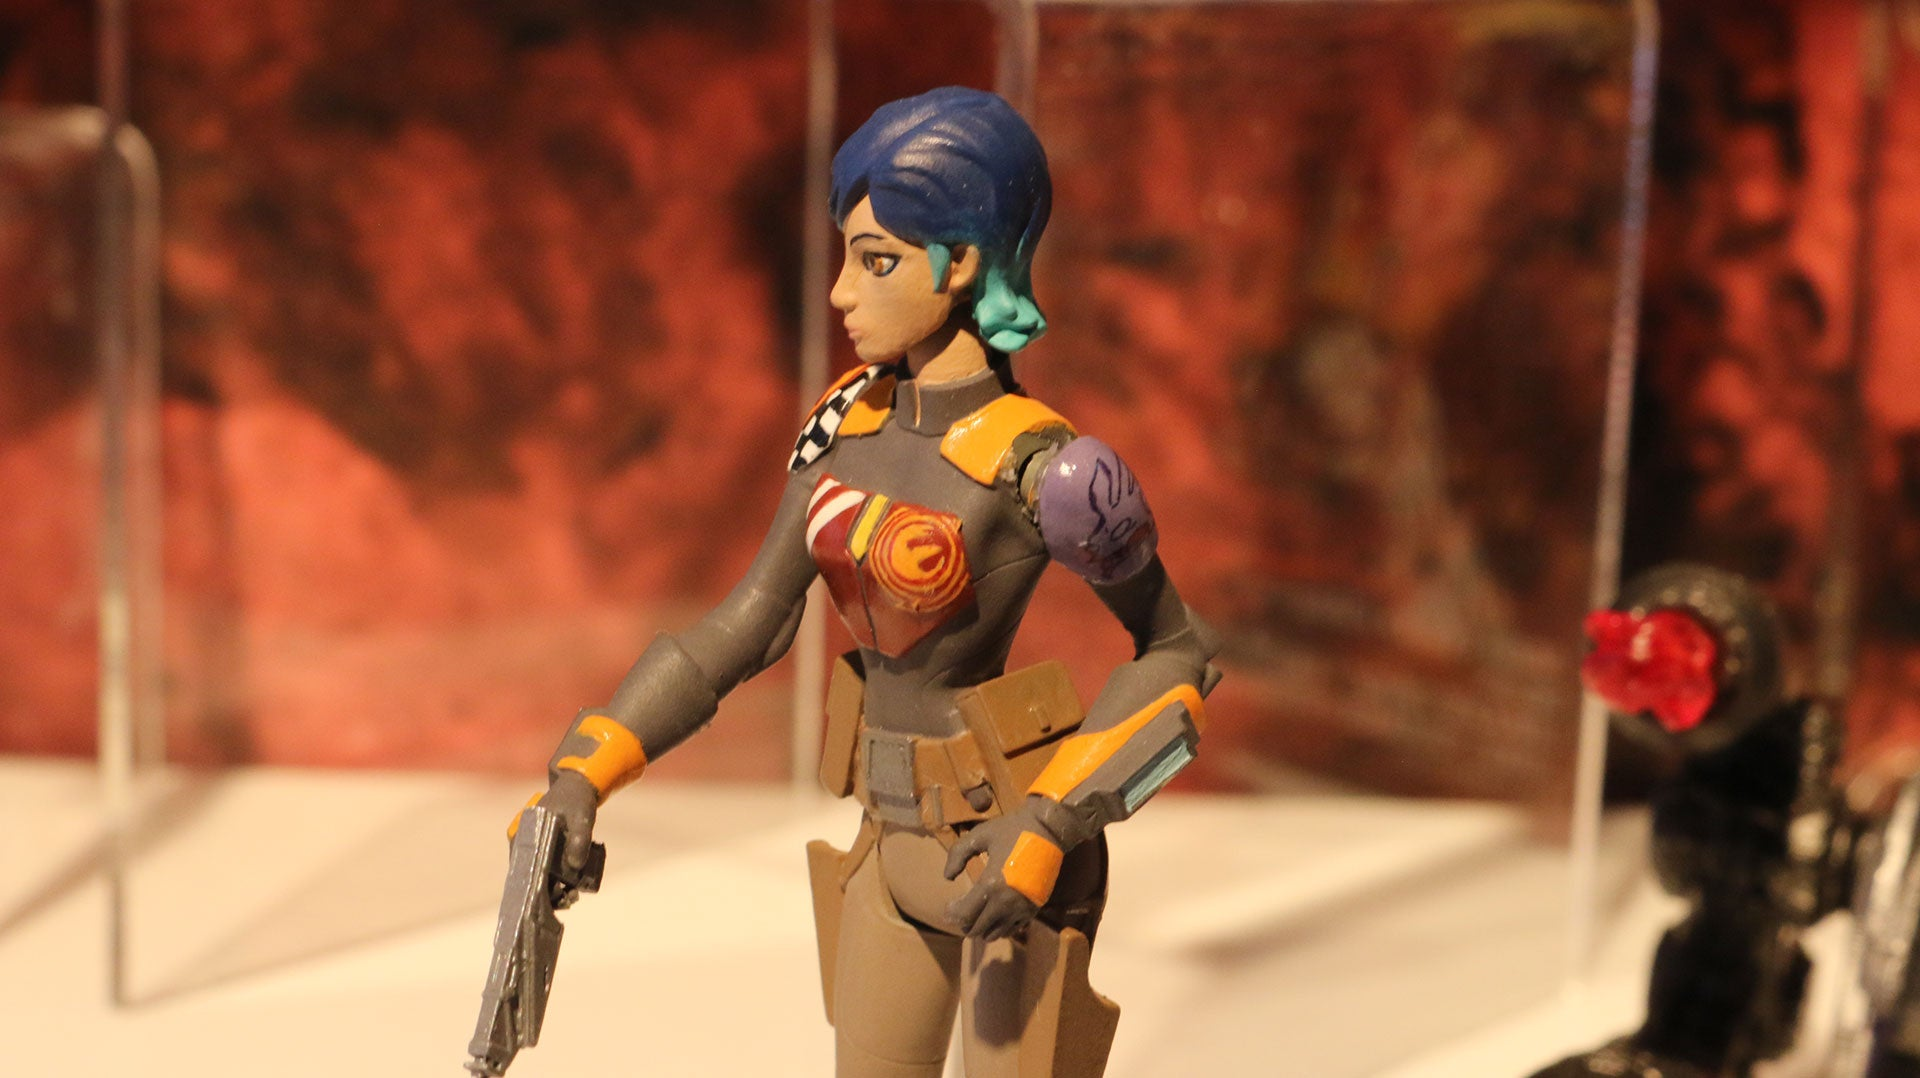 Fan Favourite Star Wars Rebel Gets The Action Figure She Deserves